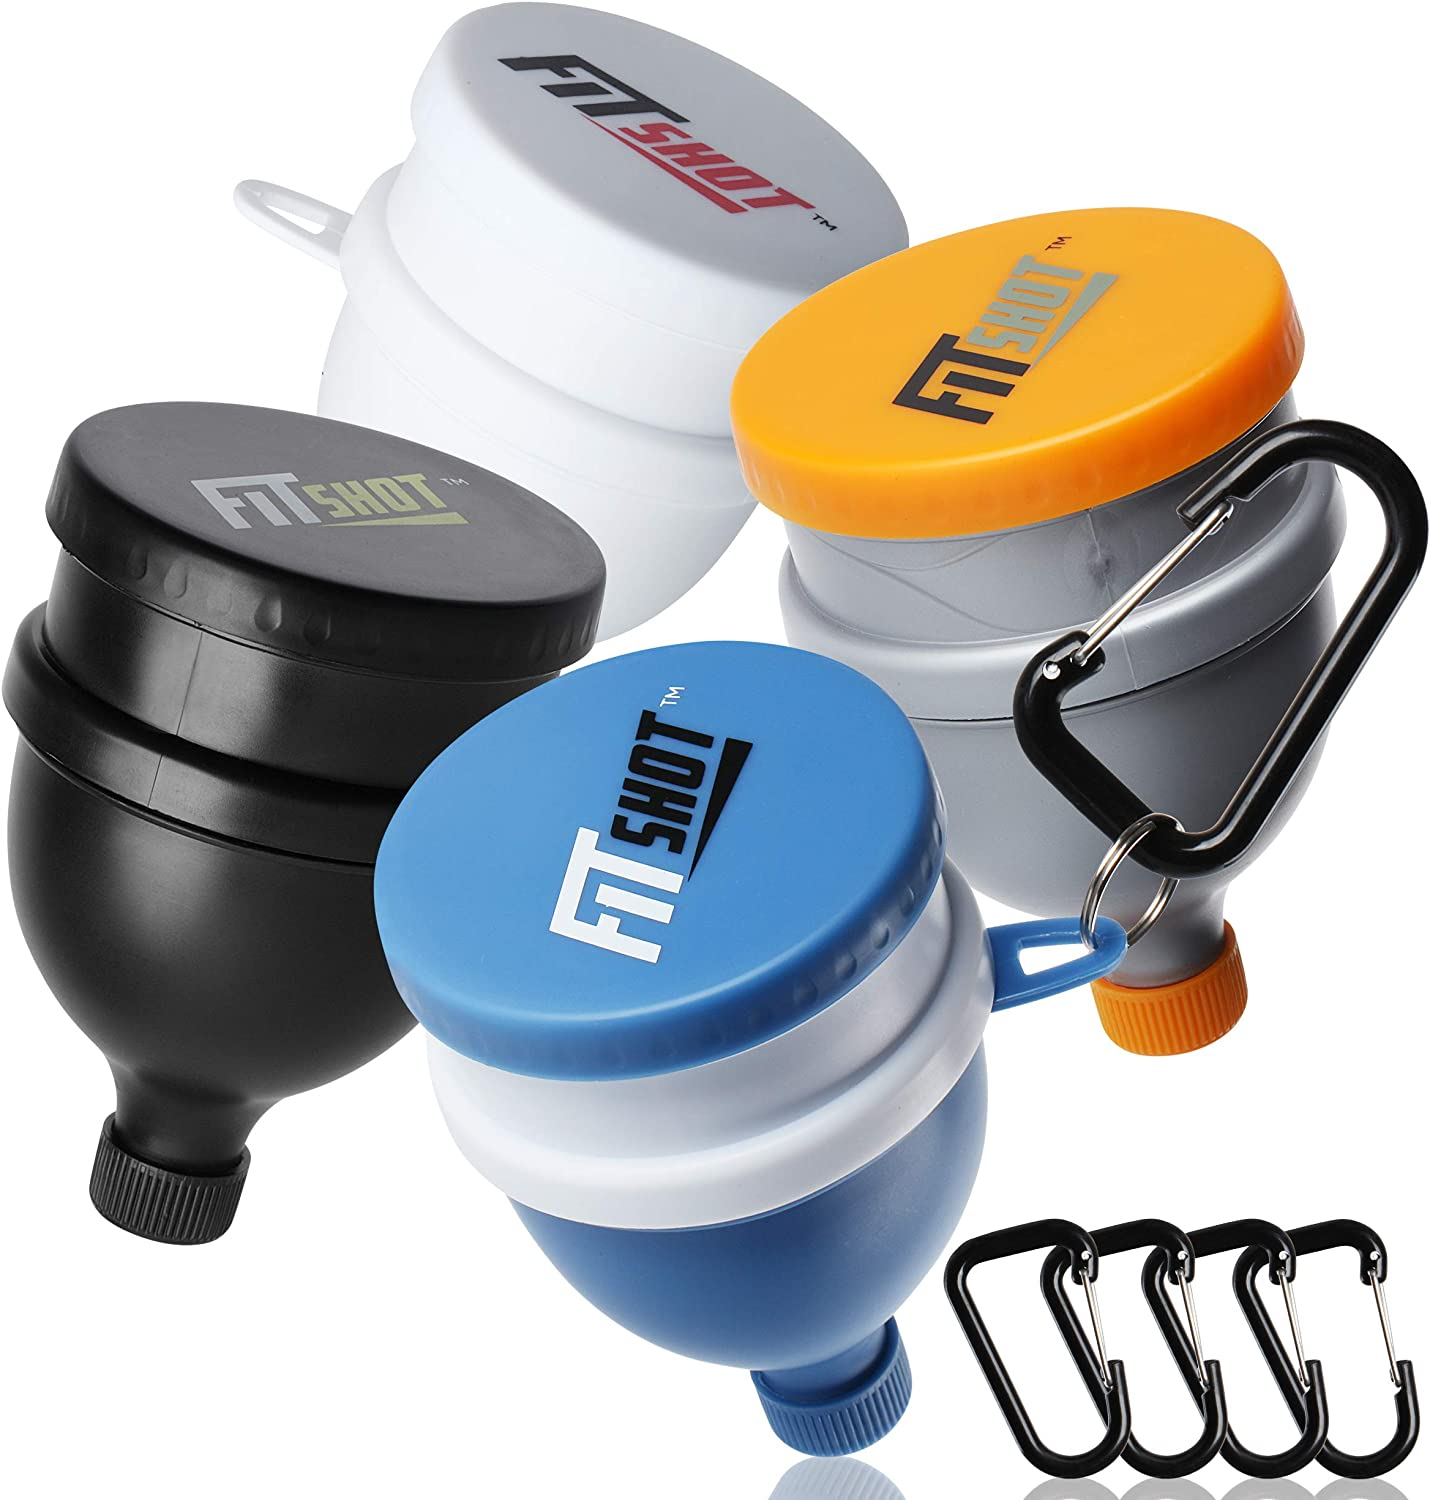 FitShot Protein Powder Funnel– Supplement Funnel with Keychain 4pack, Water Bottle Funnels, BPA Free, 2 in 1,Portable 120ml with Pillbox,Pre Workout Protein Powder Container to go